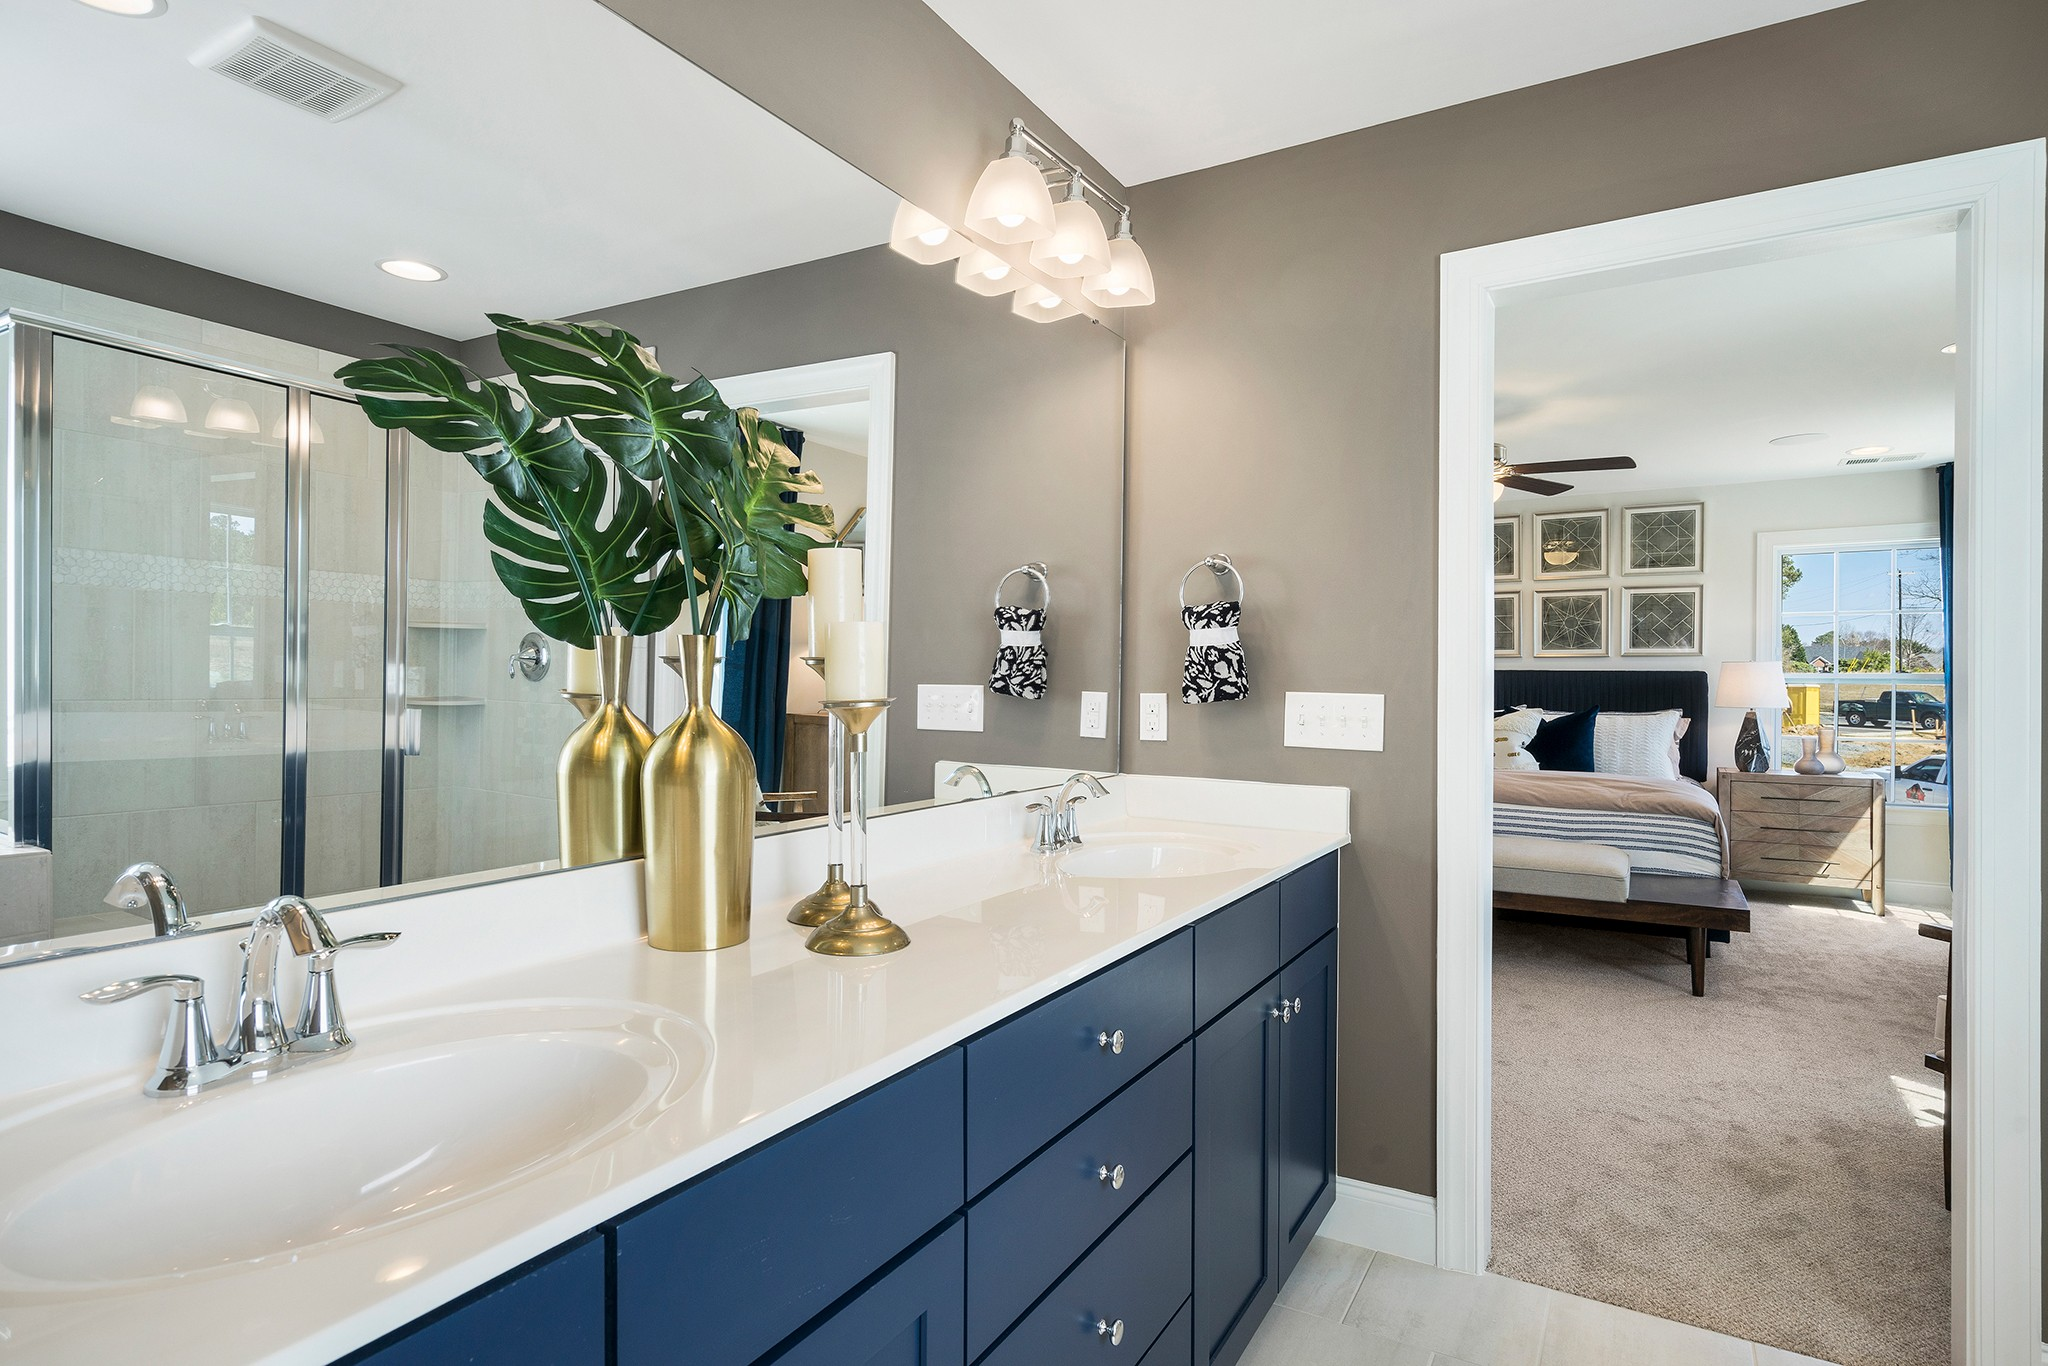 Royal Oaks a Division of Mattamy Homes, Holland Station, Fuquay-Varina, Owner's Bathroom, Home De...